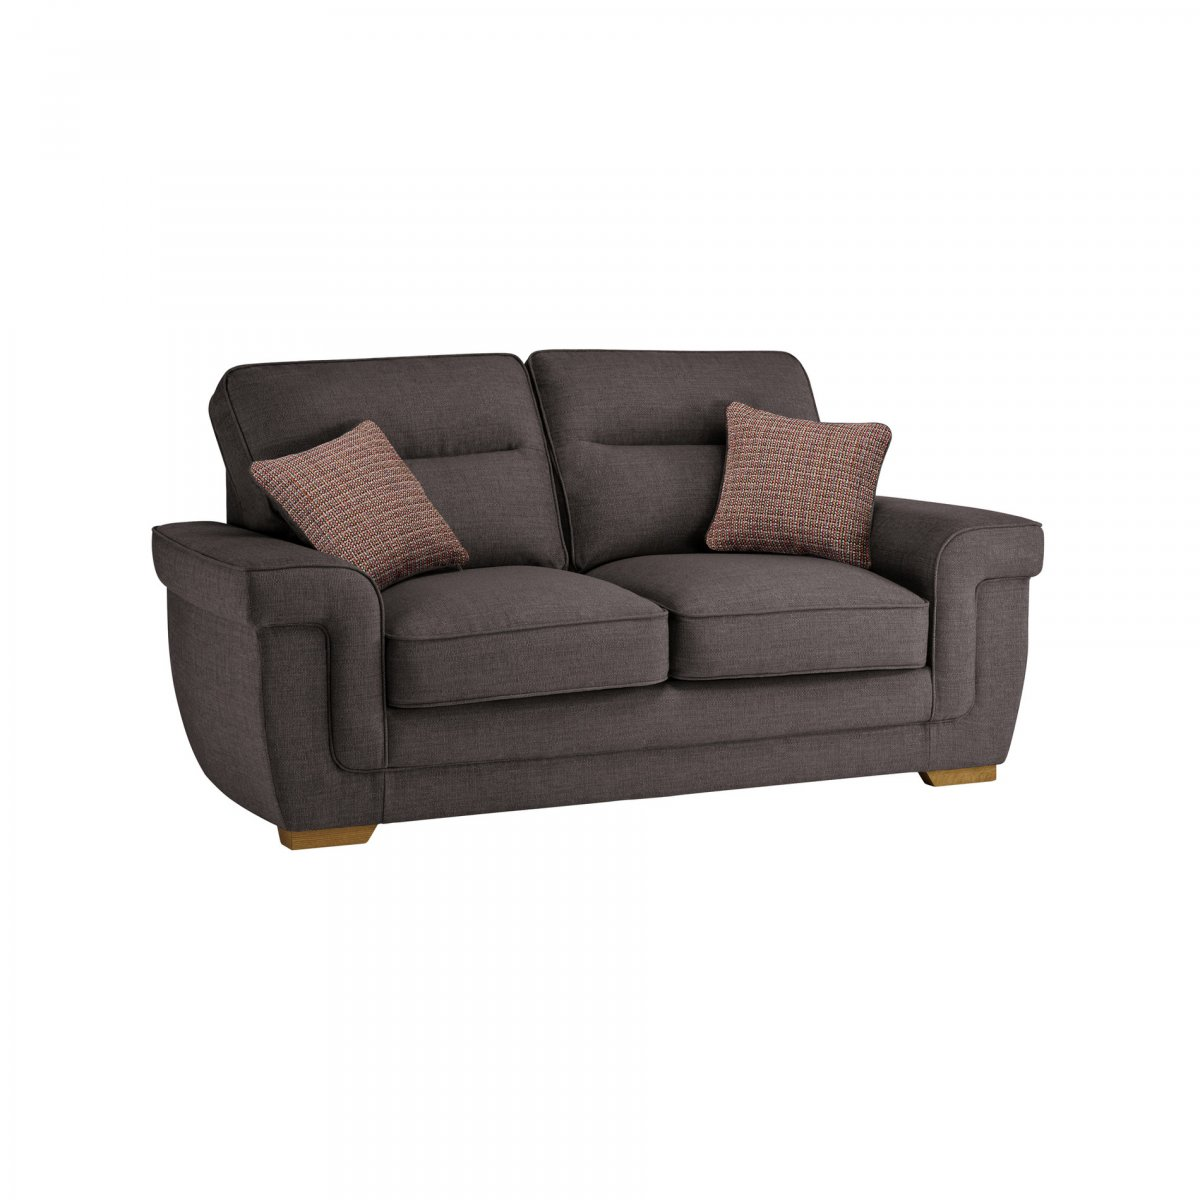 Kirby 2 seater sofa bed with deluxe mattress barley grey for Sofa bed 4 6